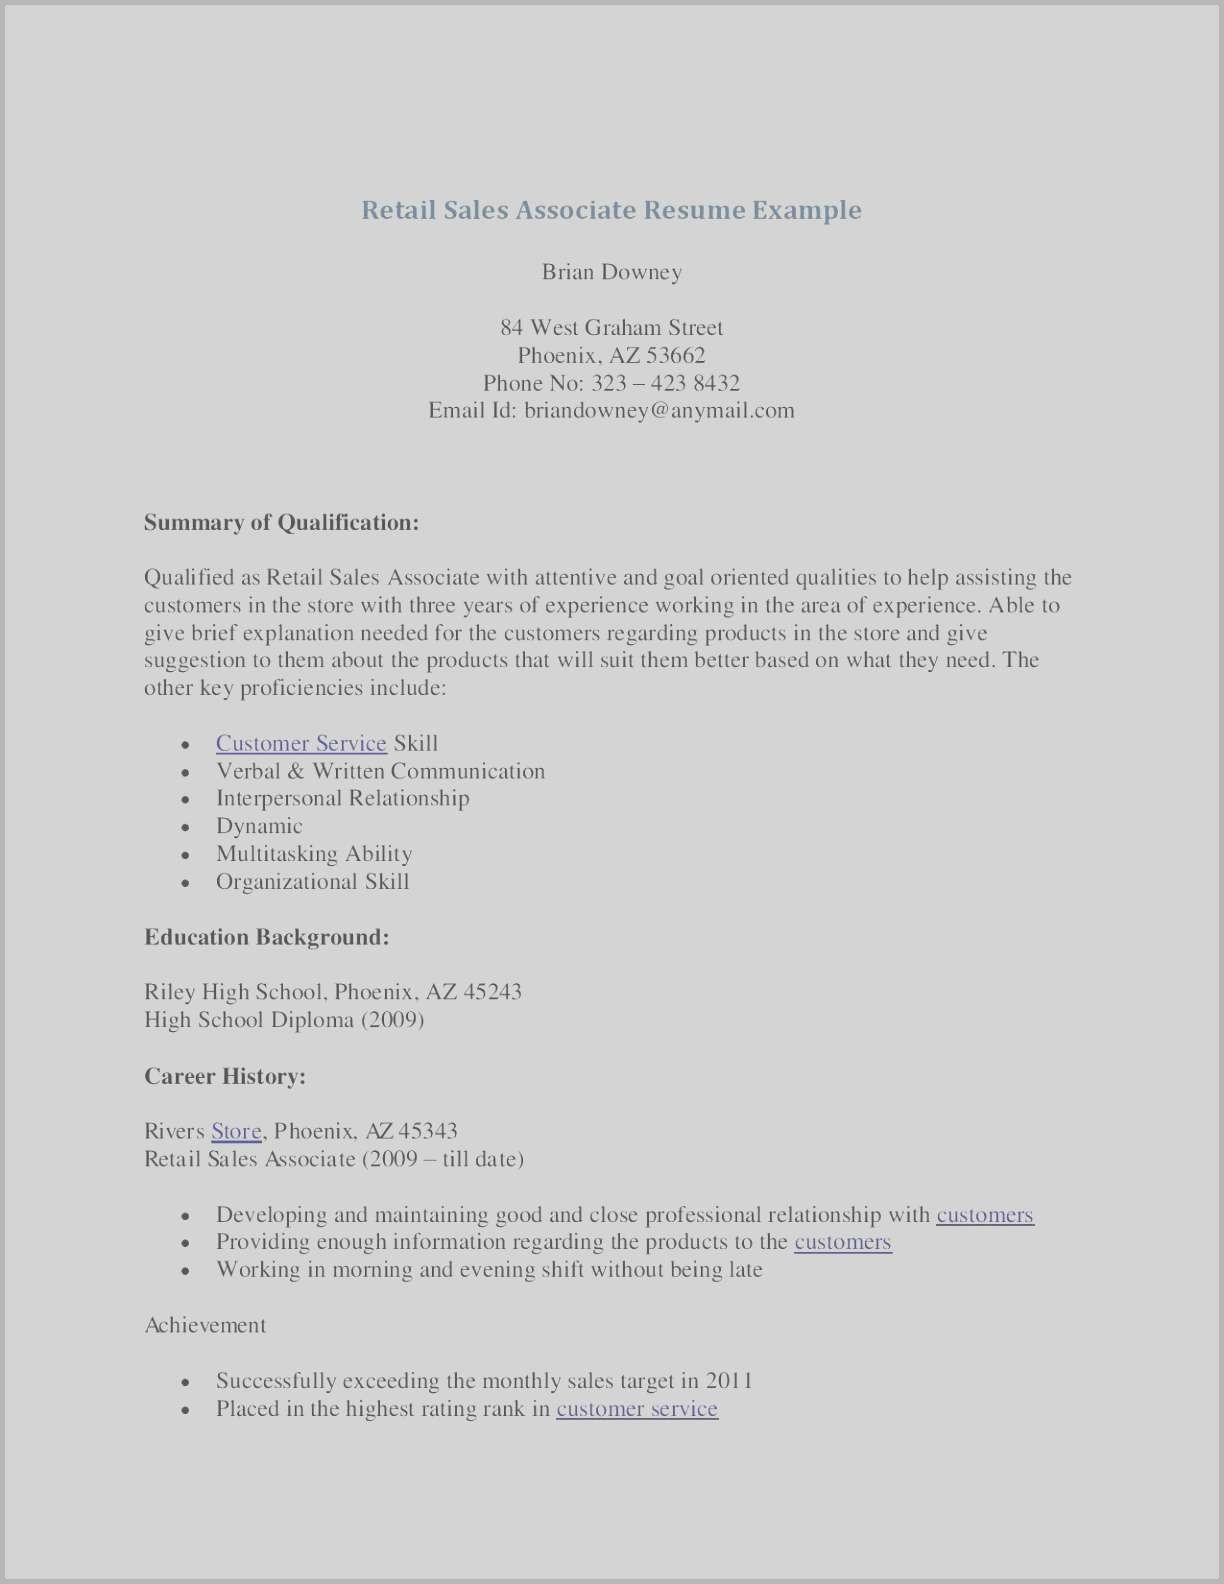 Resume Template for Retail Sales associate - Sales associate Resume Examples Lovely Sample Resume Retail Sales